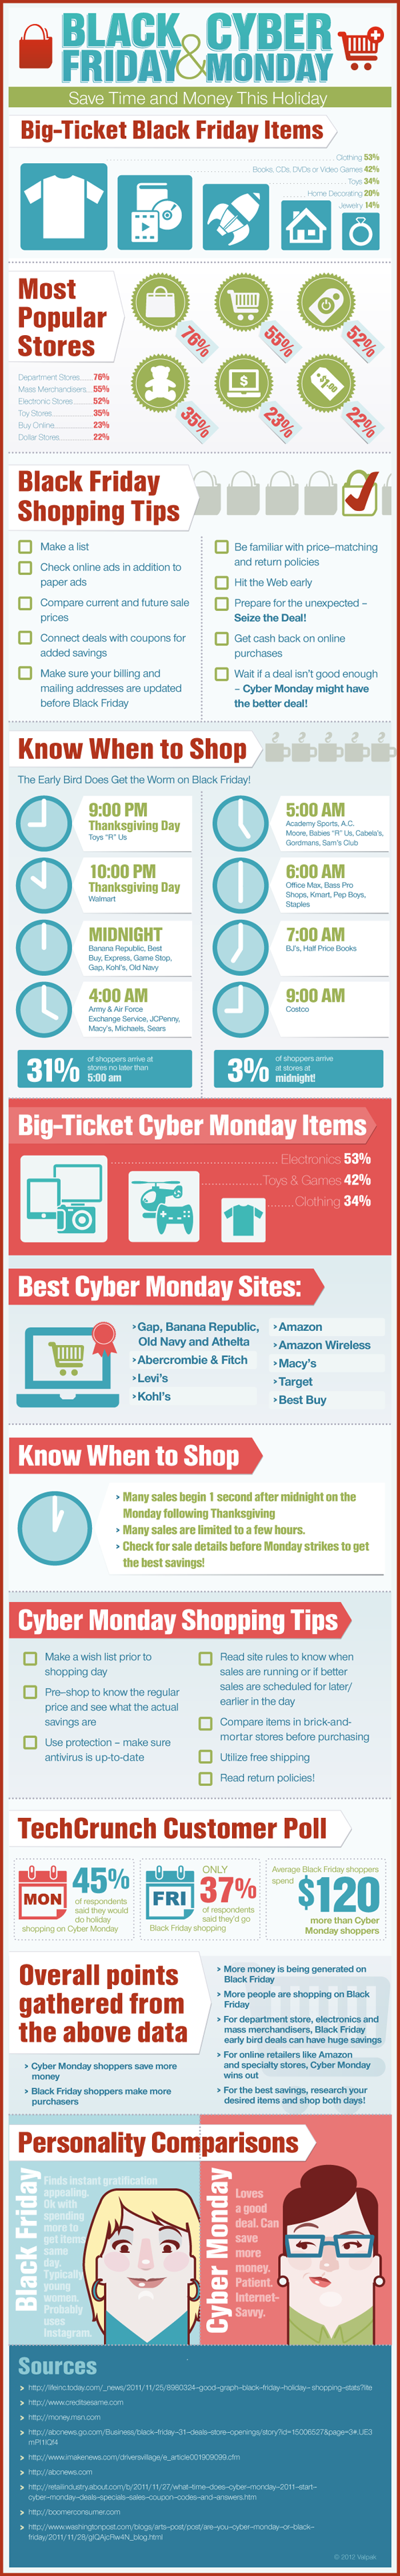 How to Shop on Black Friday and Cyber Monday Infographic